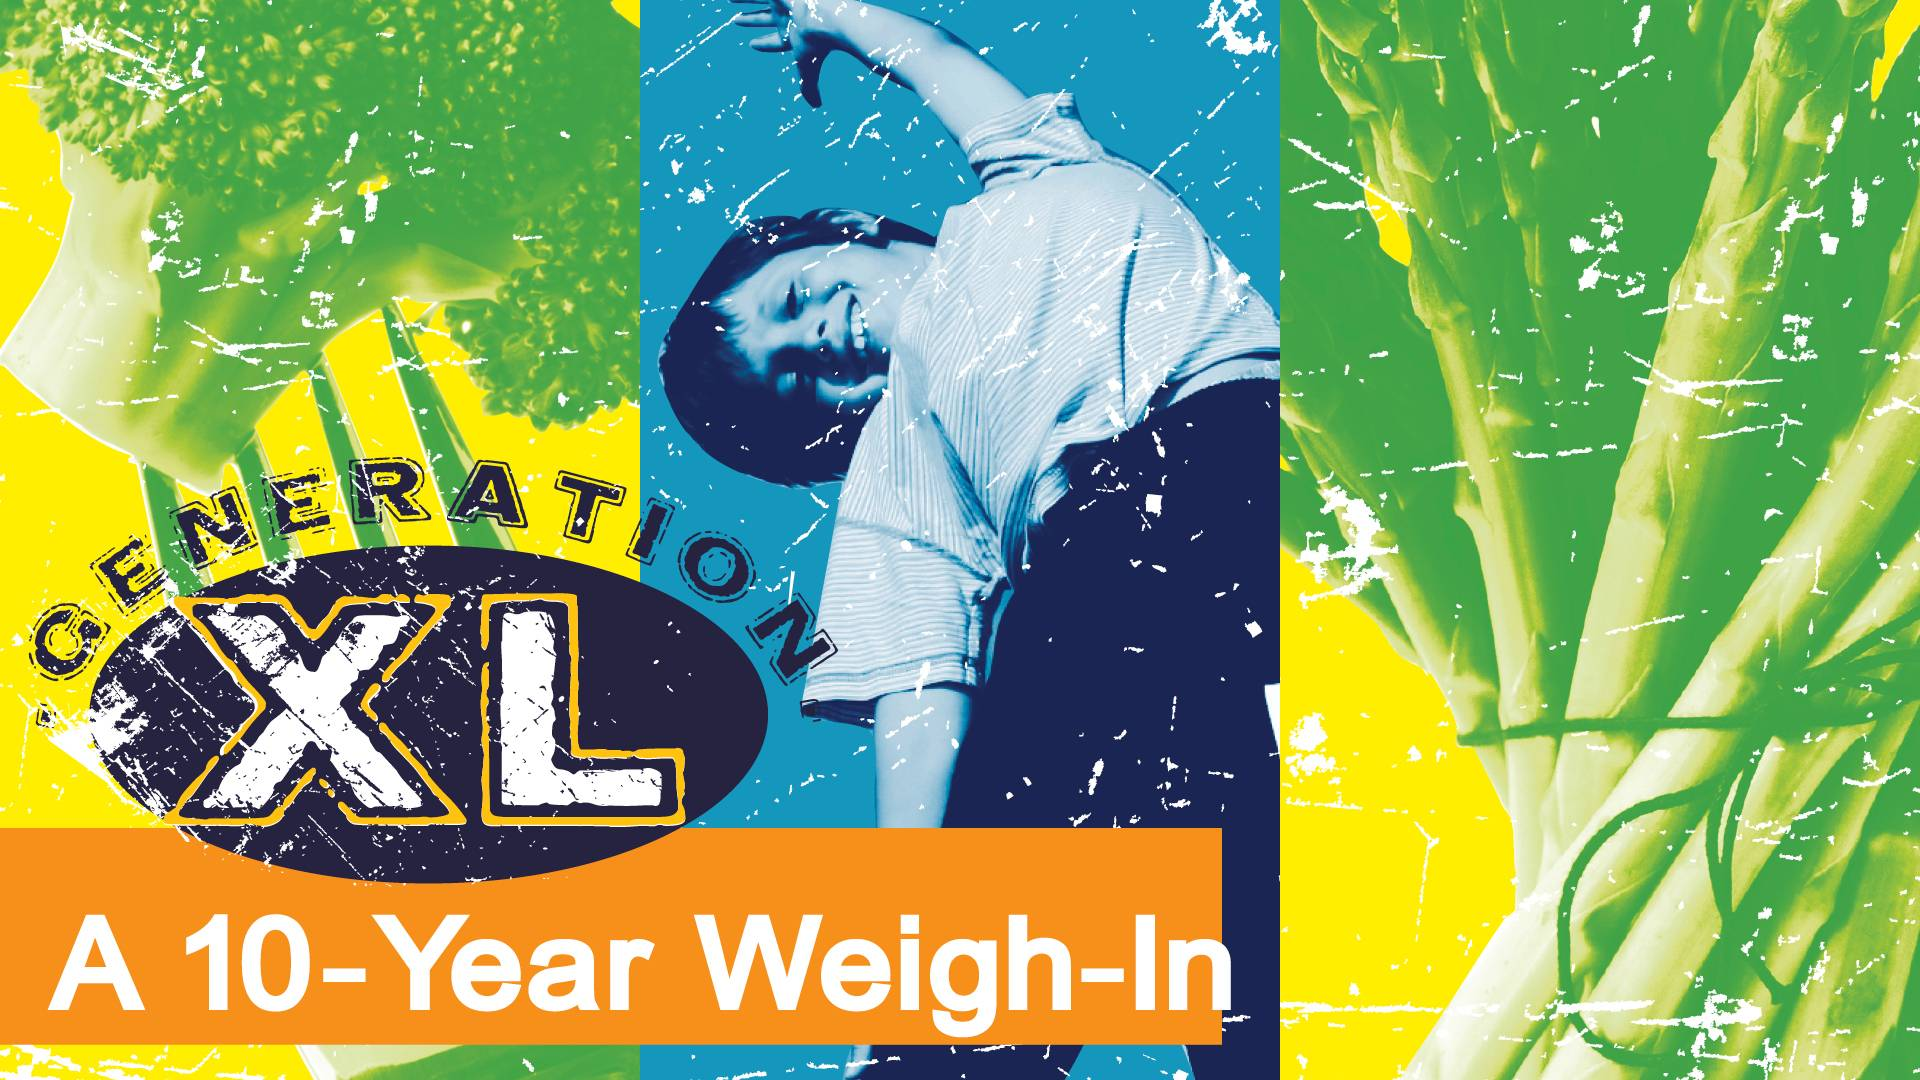 Generation XL: A 10-Year Weigh-In